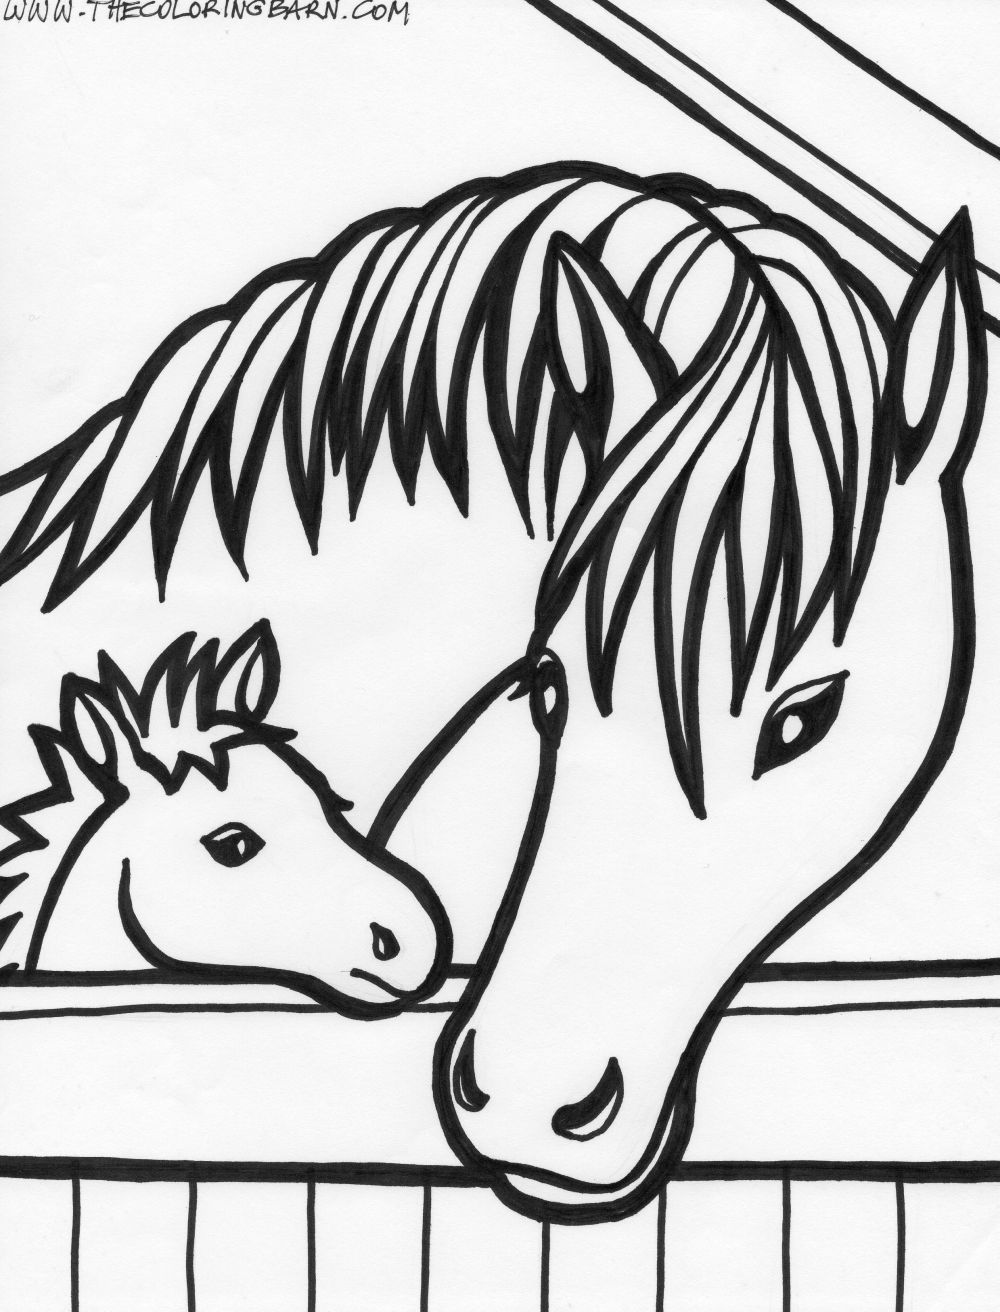 Coloring Pages Of A Horse Head